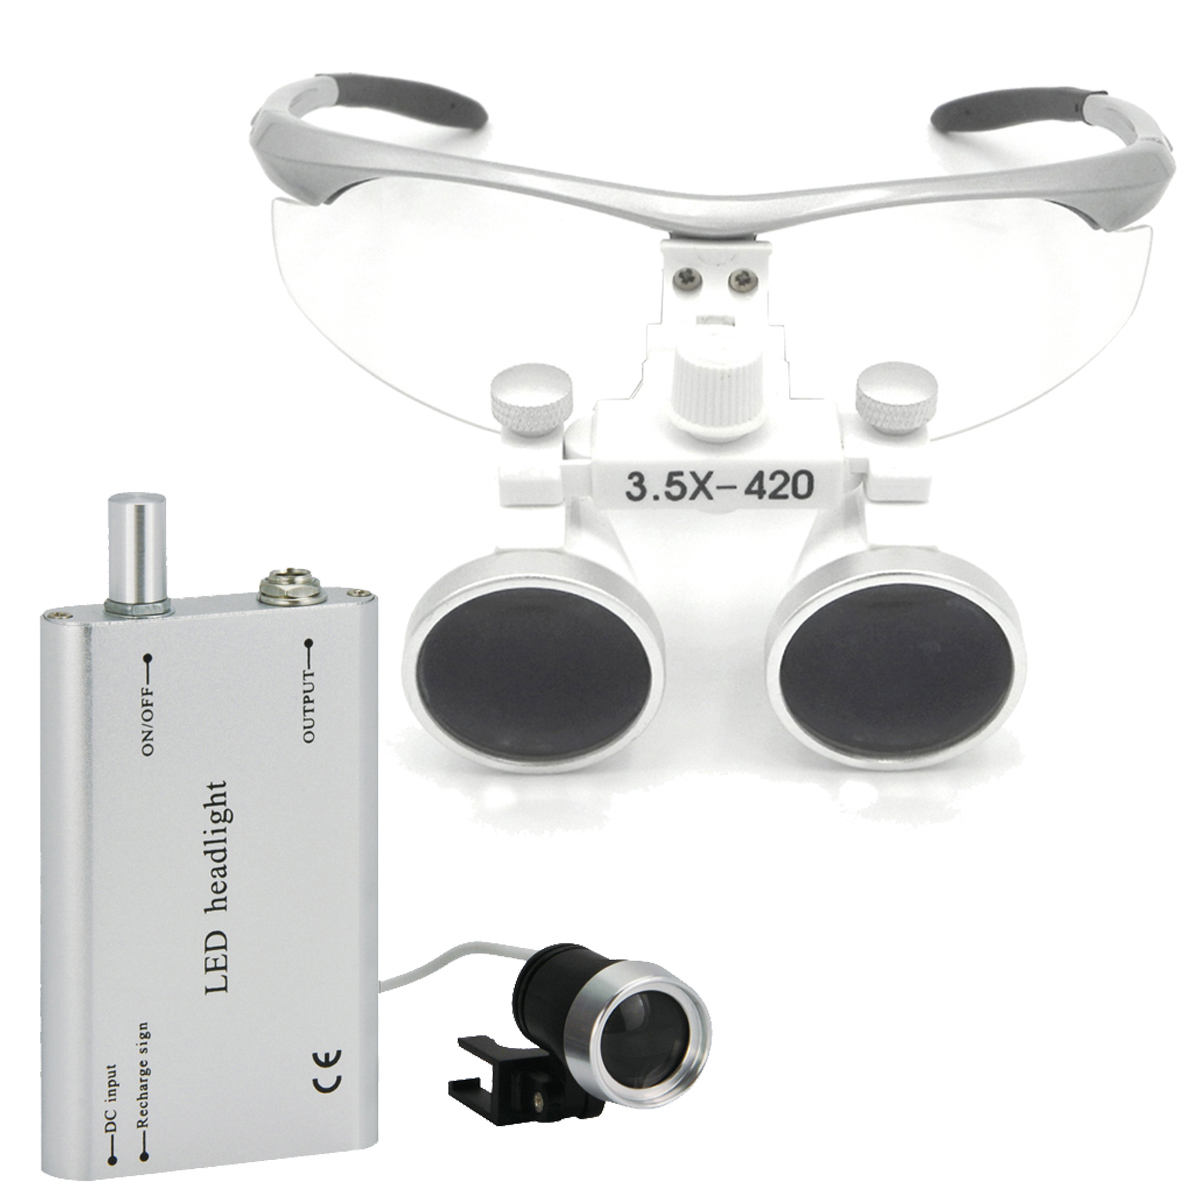 Spark 3.5 x Magnification Professional Loupes with 3 Watt Headlight for Dental Surgical or Hobby Adjustable Pupil Distance  цены